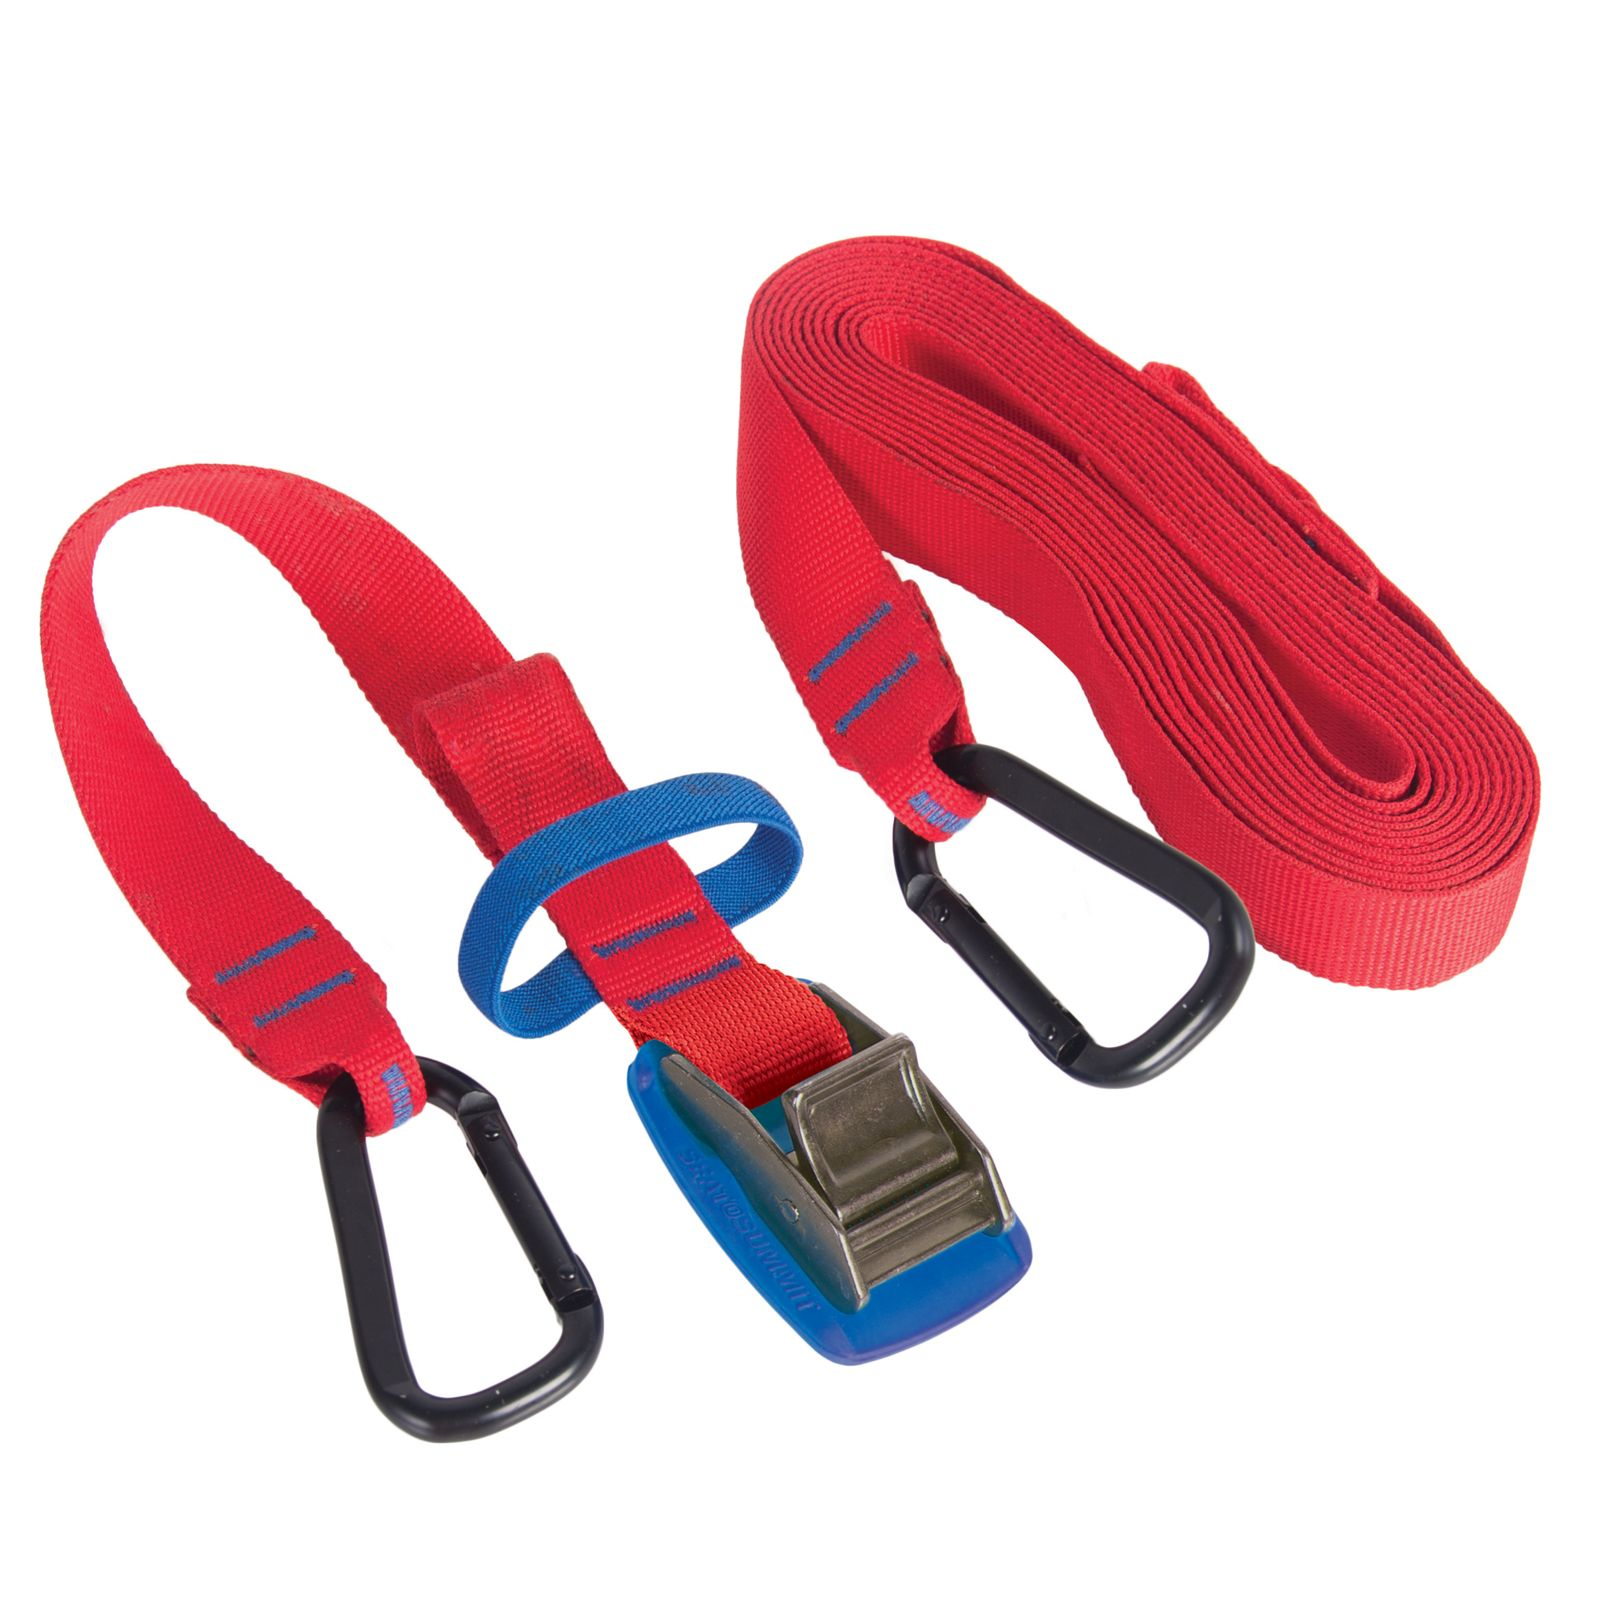 small resolution of sea to summit l carabiner tie down l car rack accessory l kayak straps